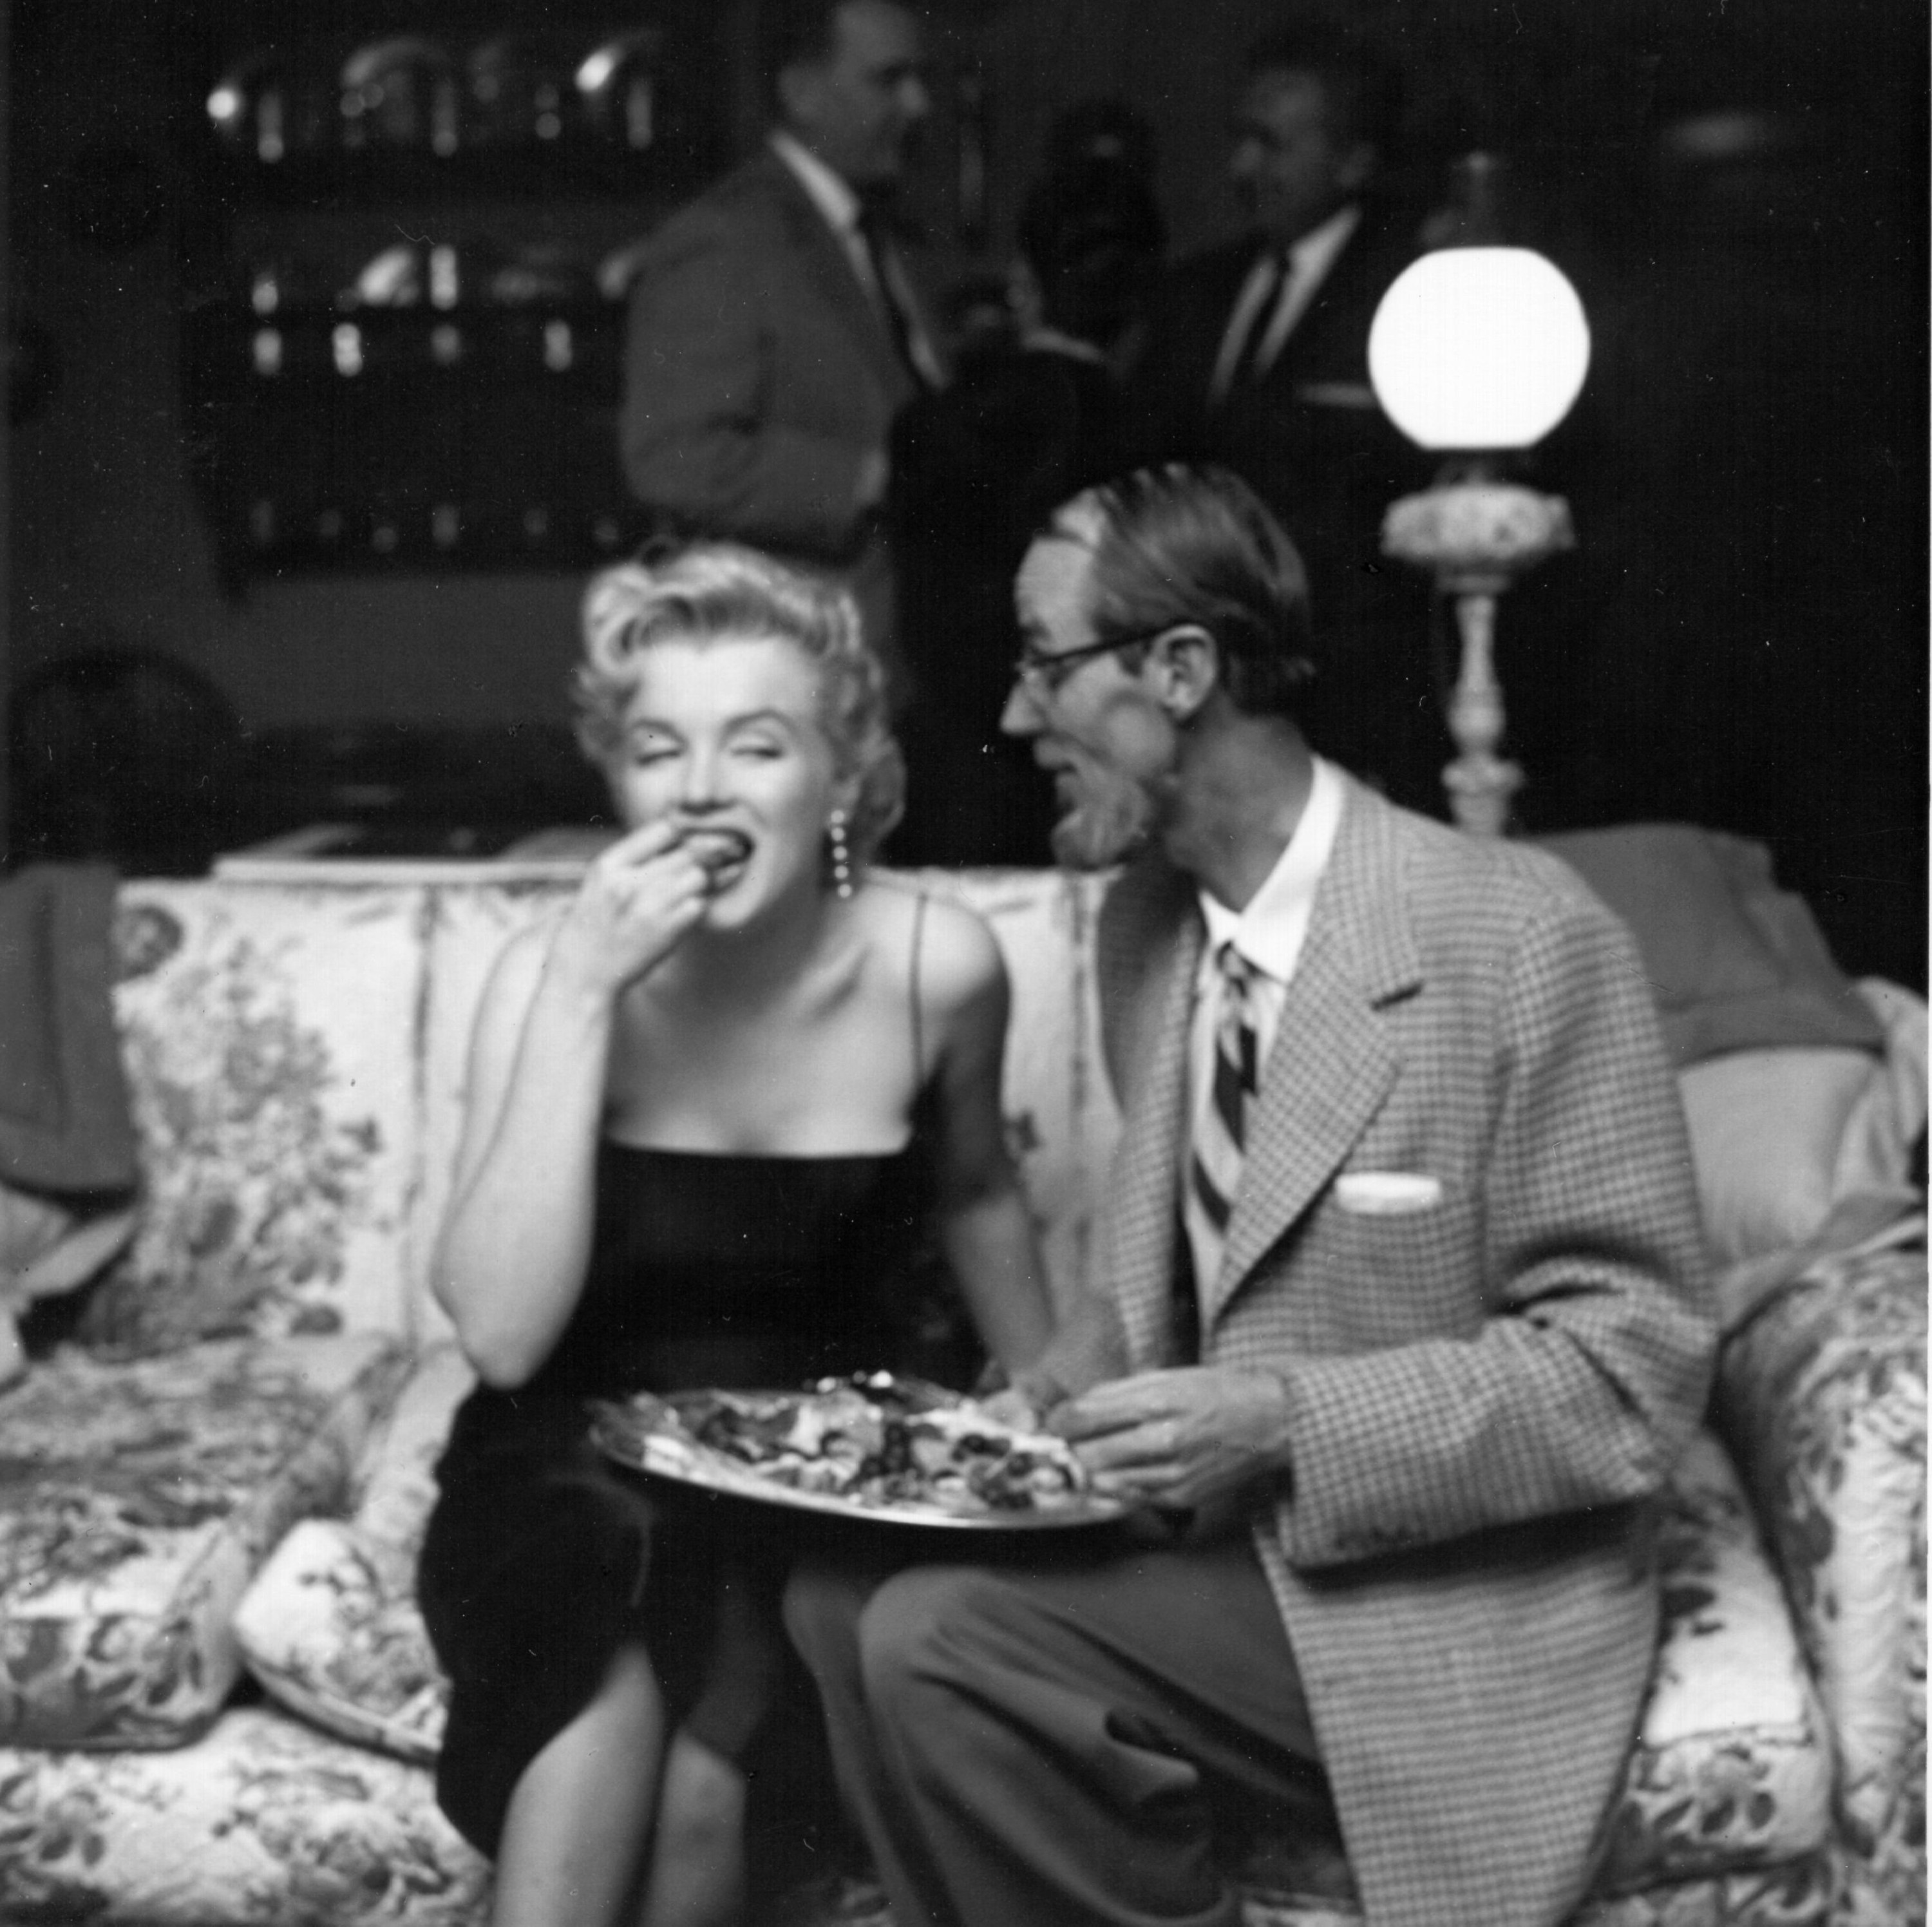 Marilyn Monroe eats and sits on a couch next to a man